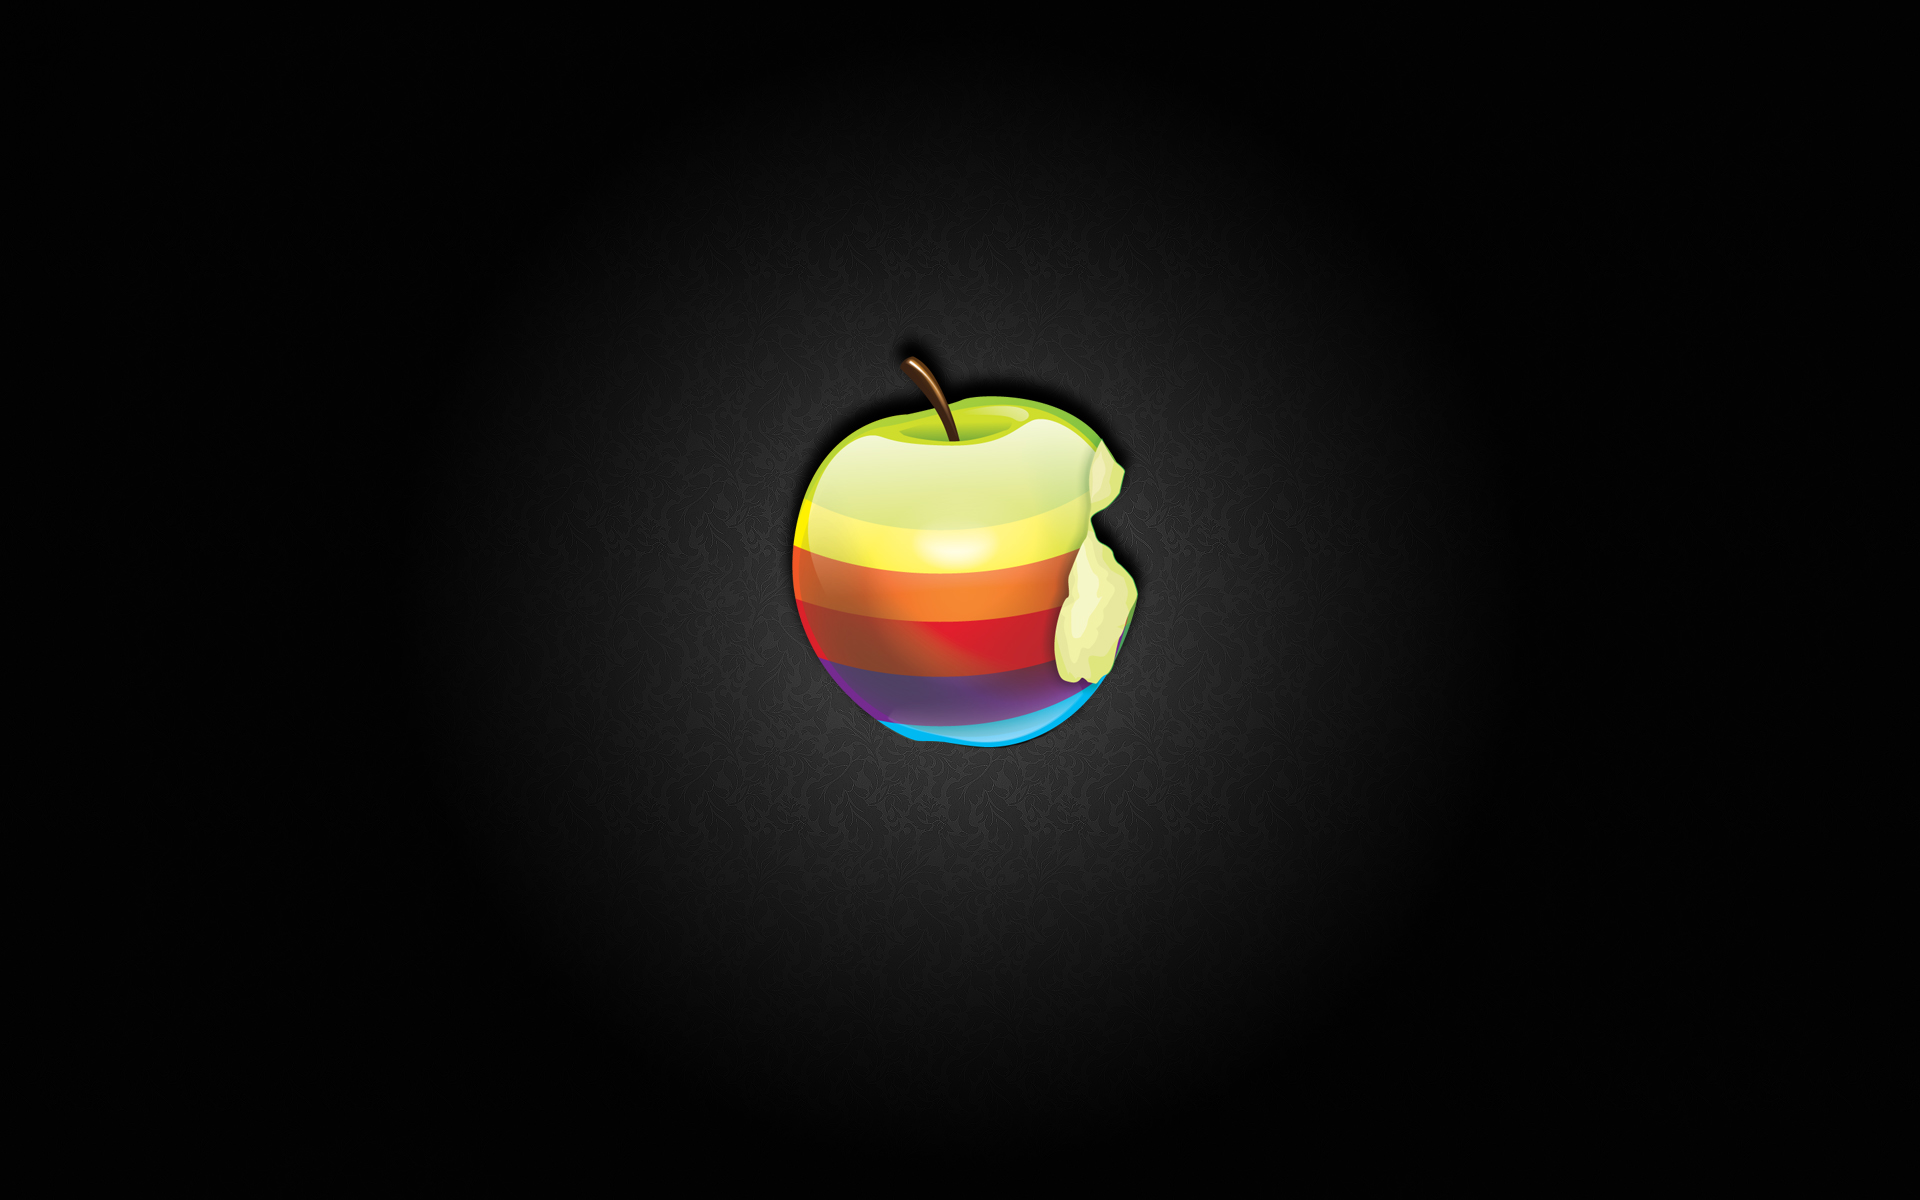 Macbook Air HD Wallpapers 12 Freetopwallpapercom 1920x1200